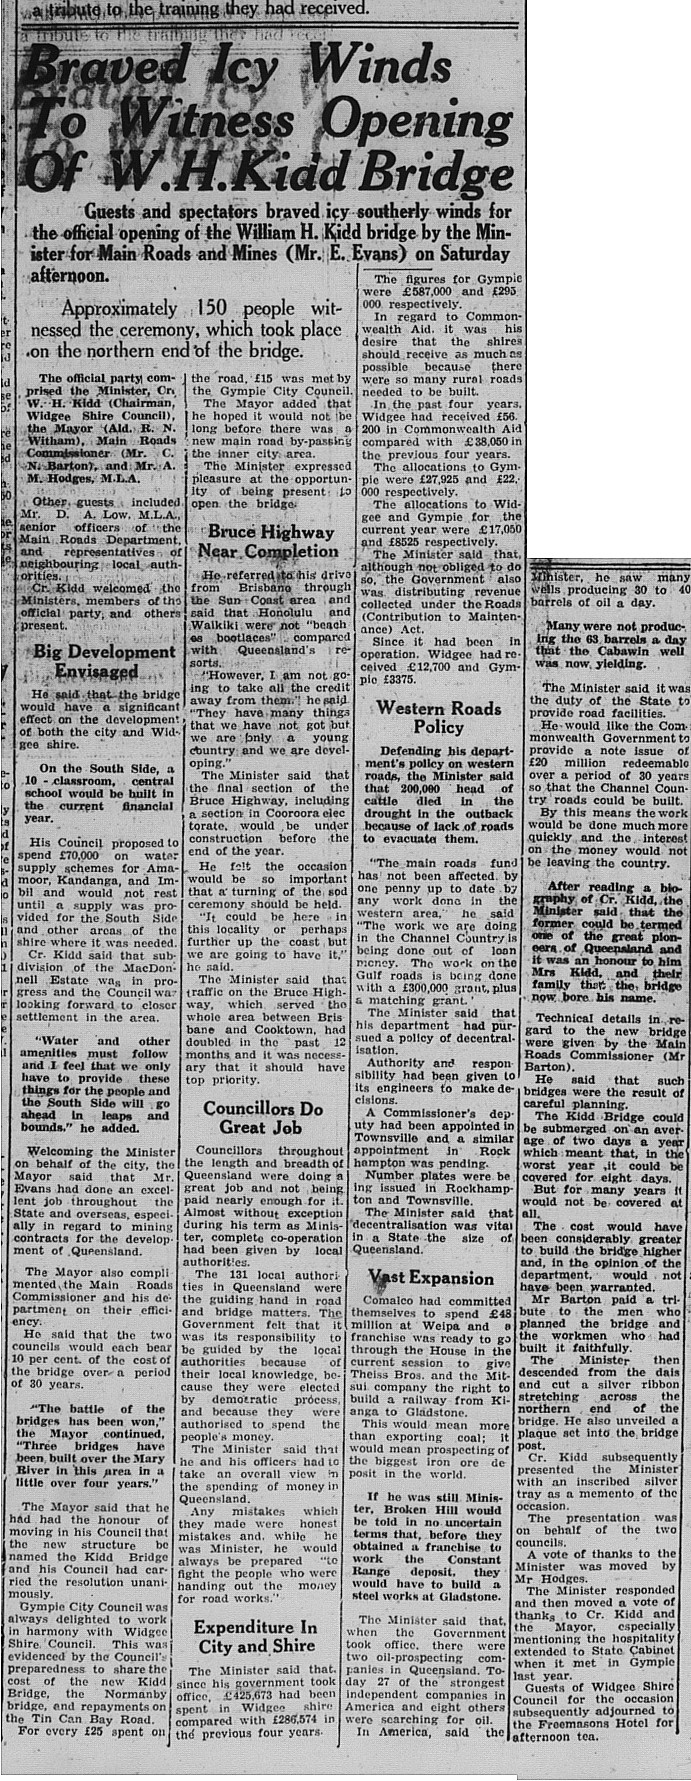 Gympie Times, Tuesday, August 8, 1961 p. 2 Braved Icy Winds to Witness Opening of W H Kidd Bridge